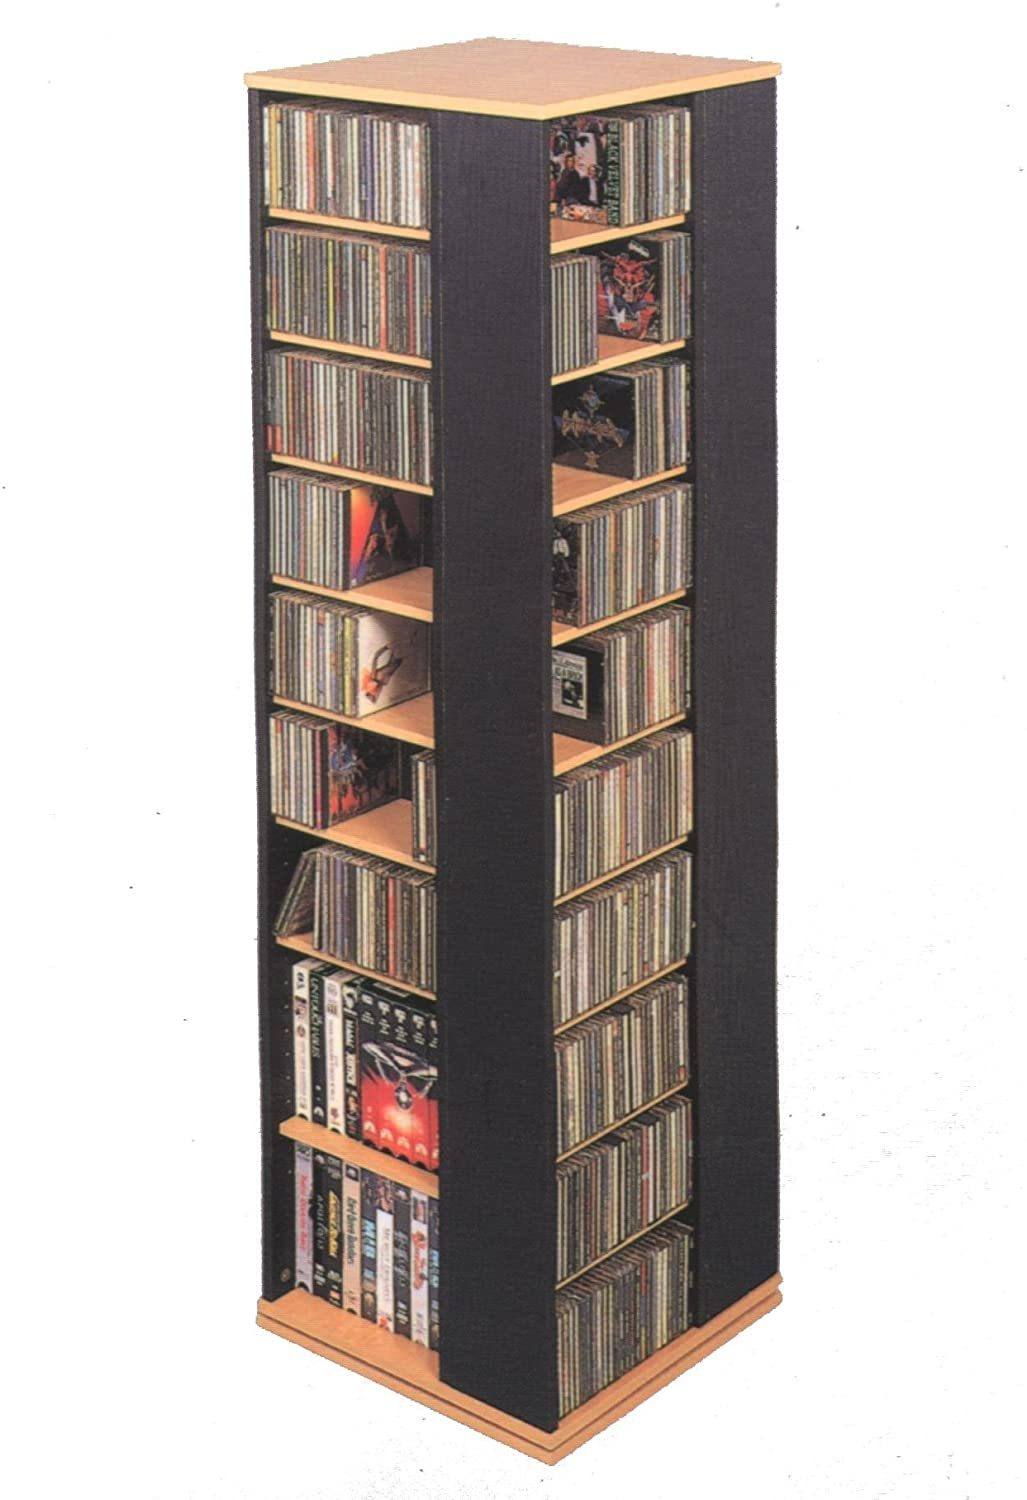 CD-1040C Revolving CD / DVD Storage Tower, Oak with Black